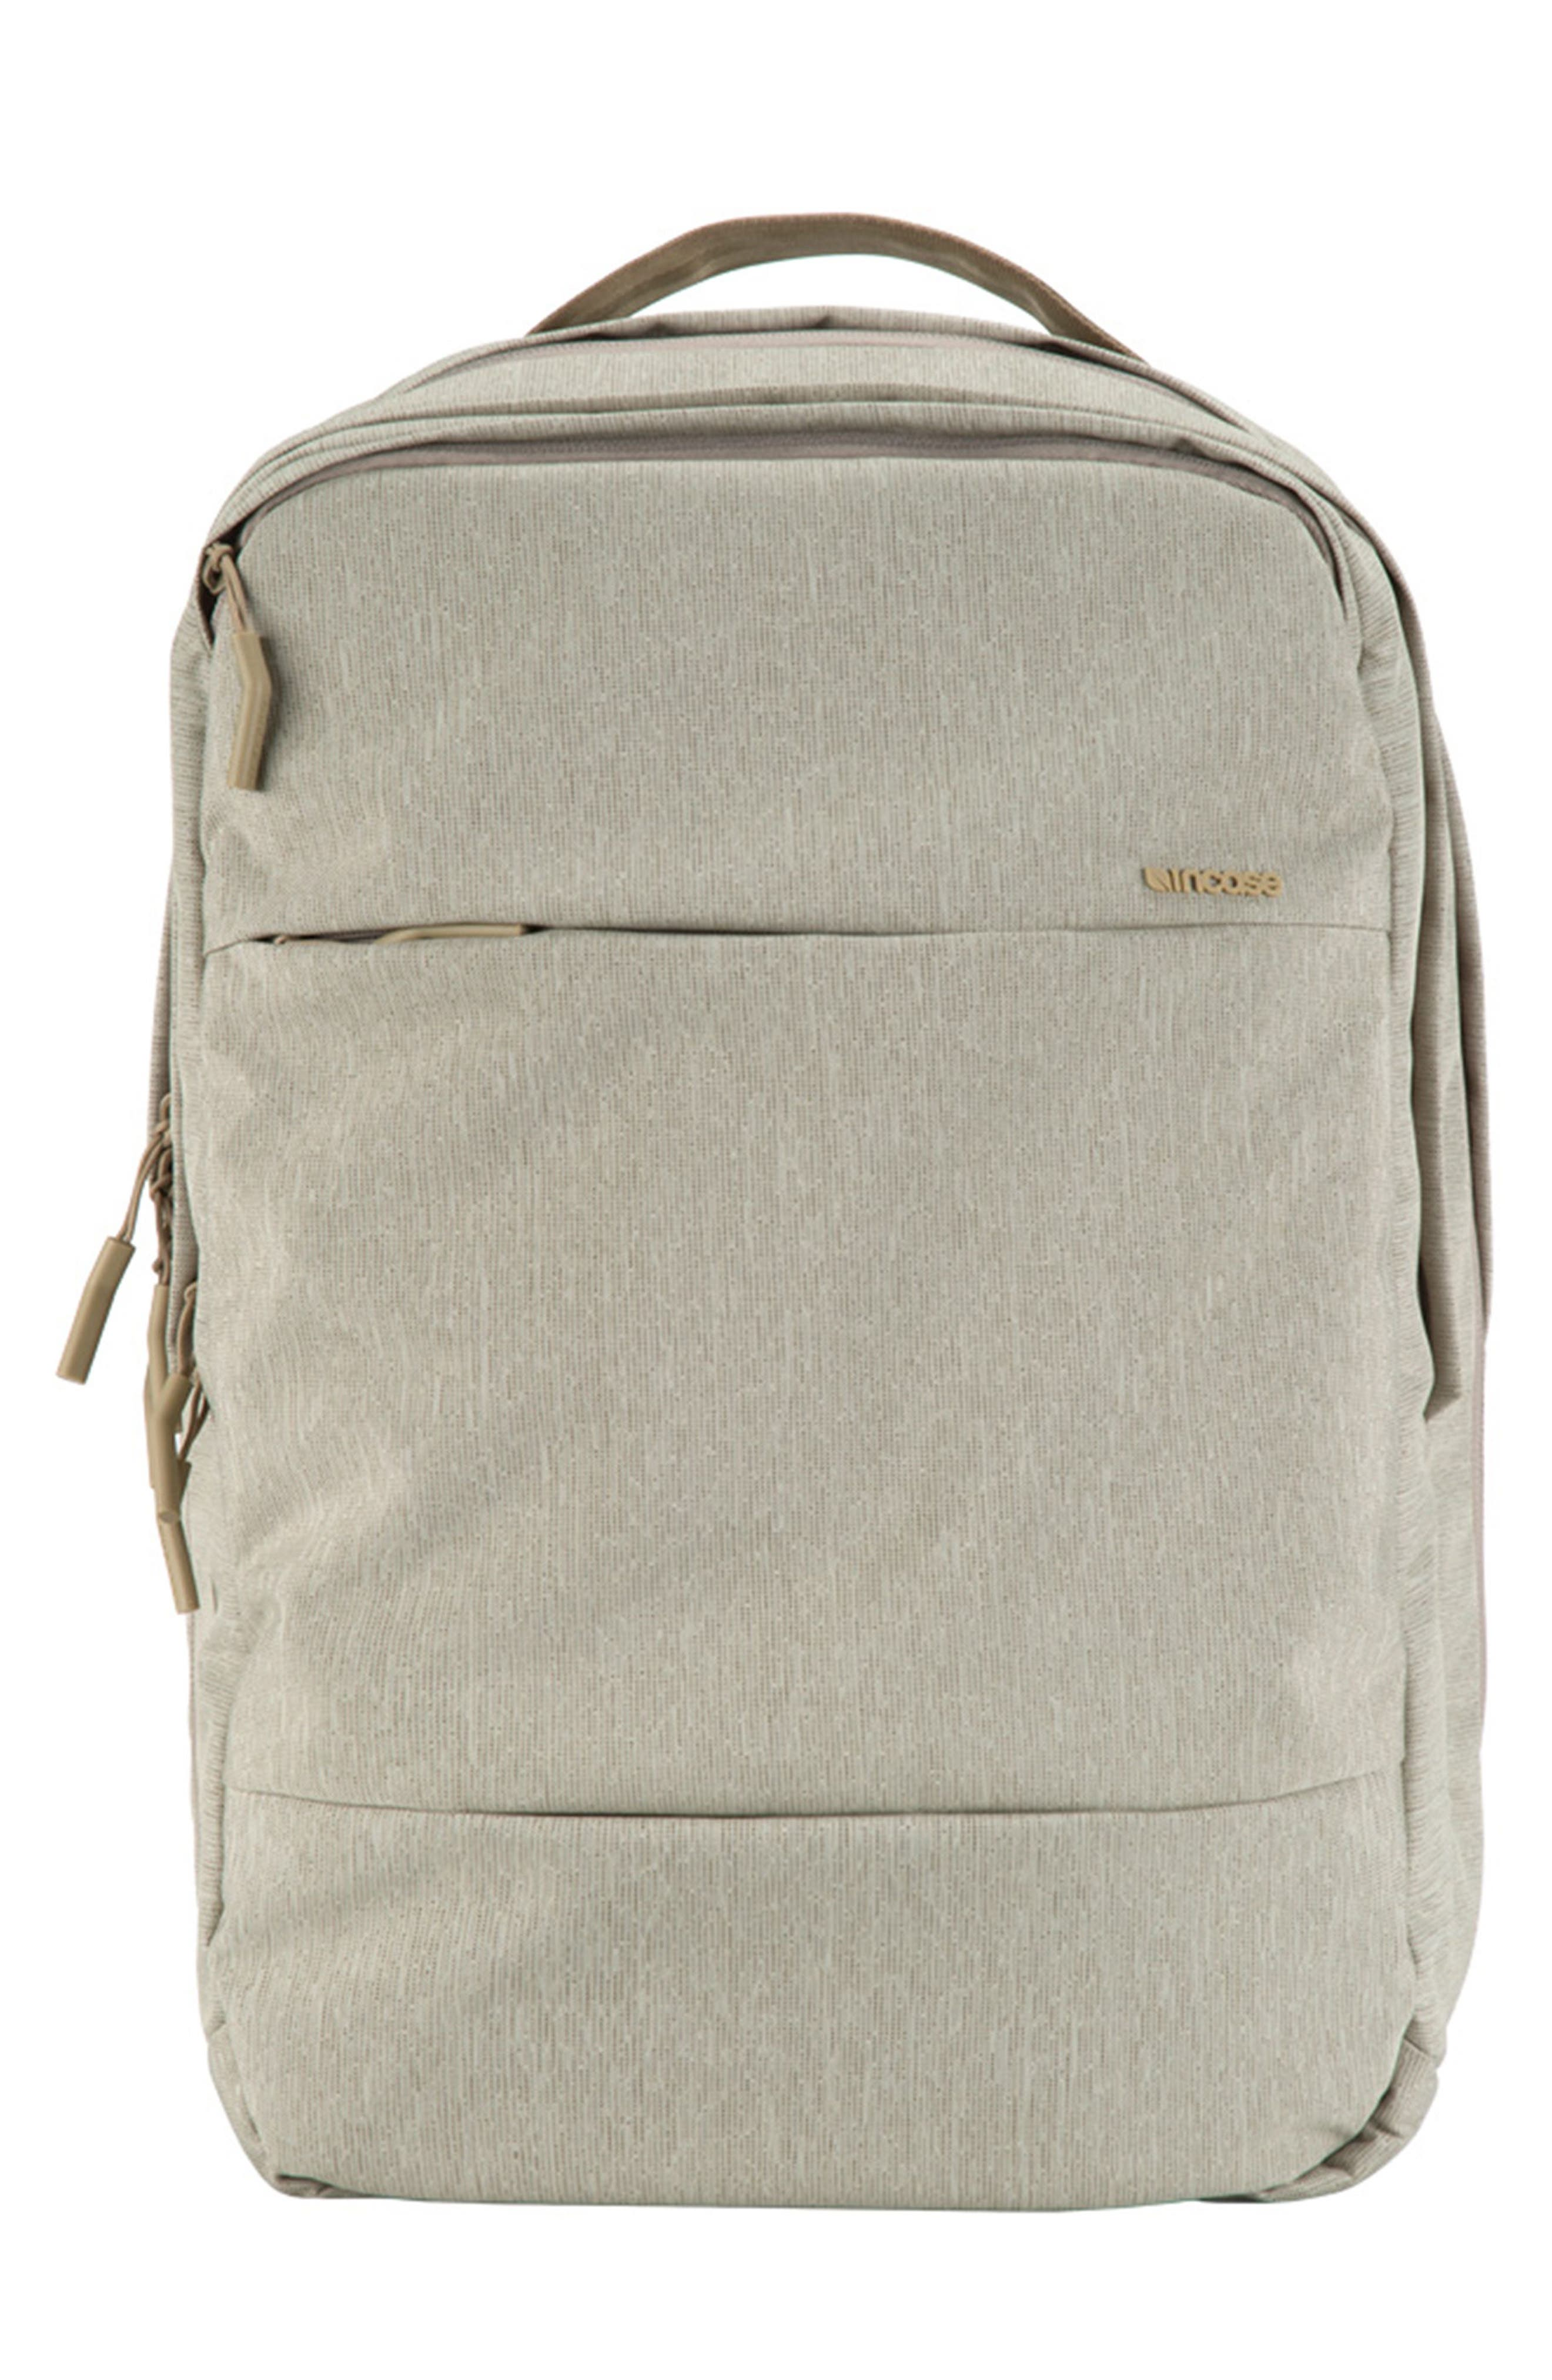 Main Image - Incase Designs City Commuter Backpack